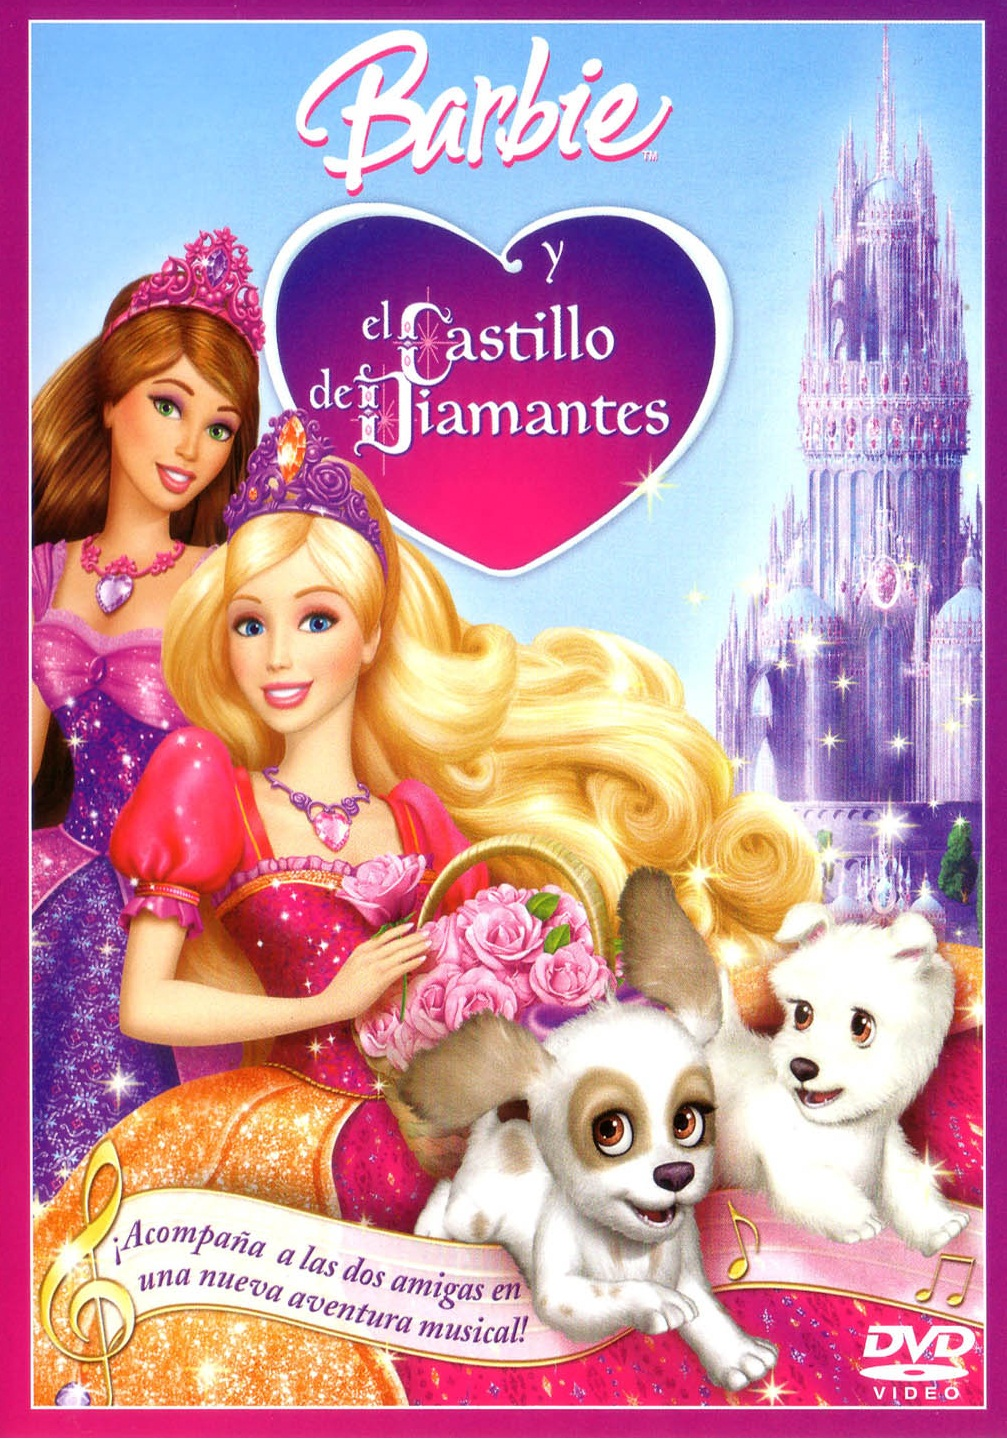 Barbie y el castillo de diamantes